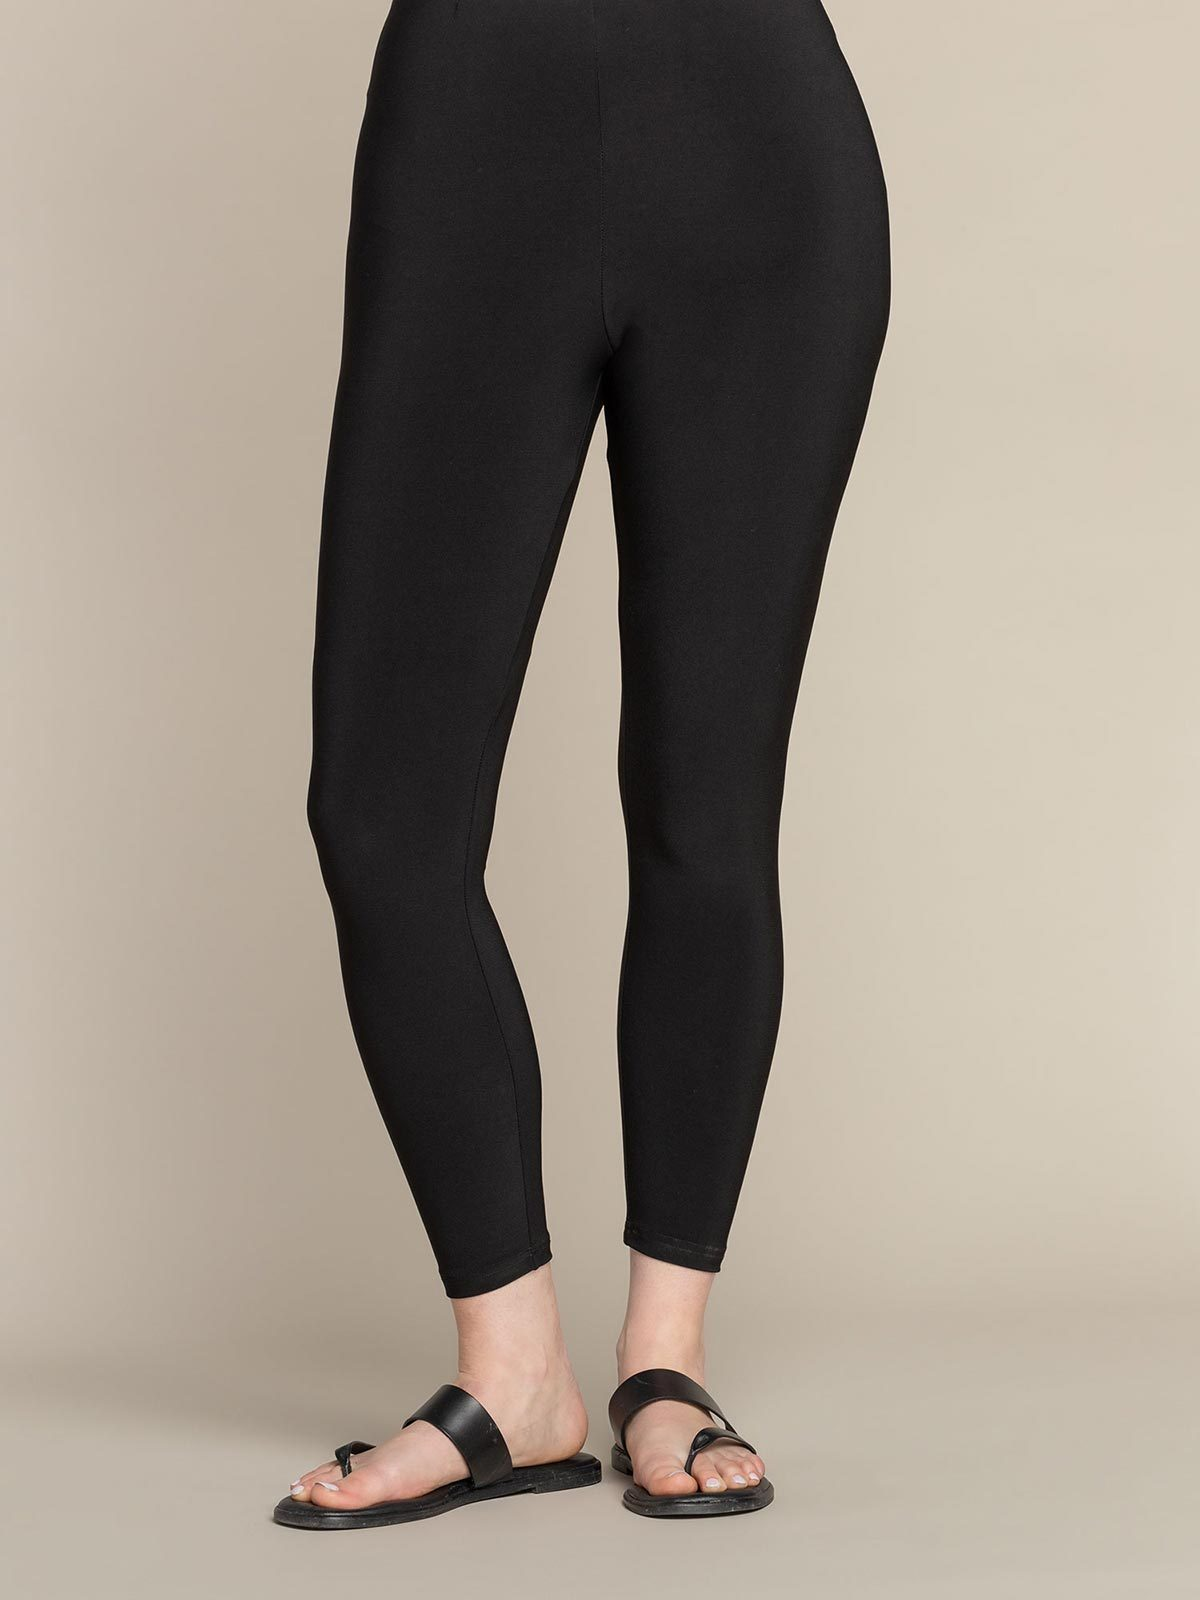 Sympli - Legging - Black